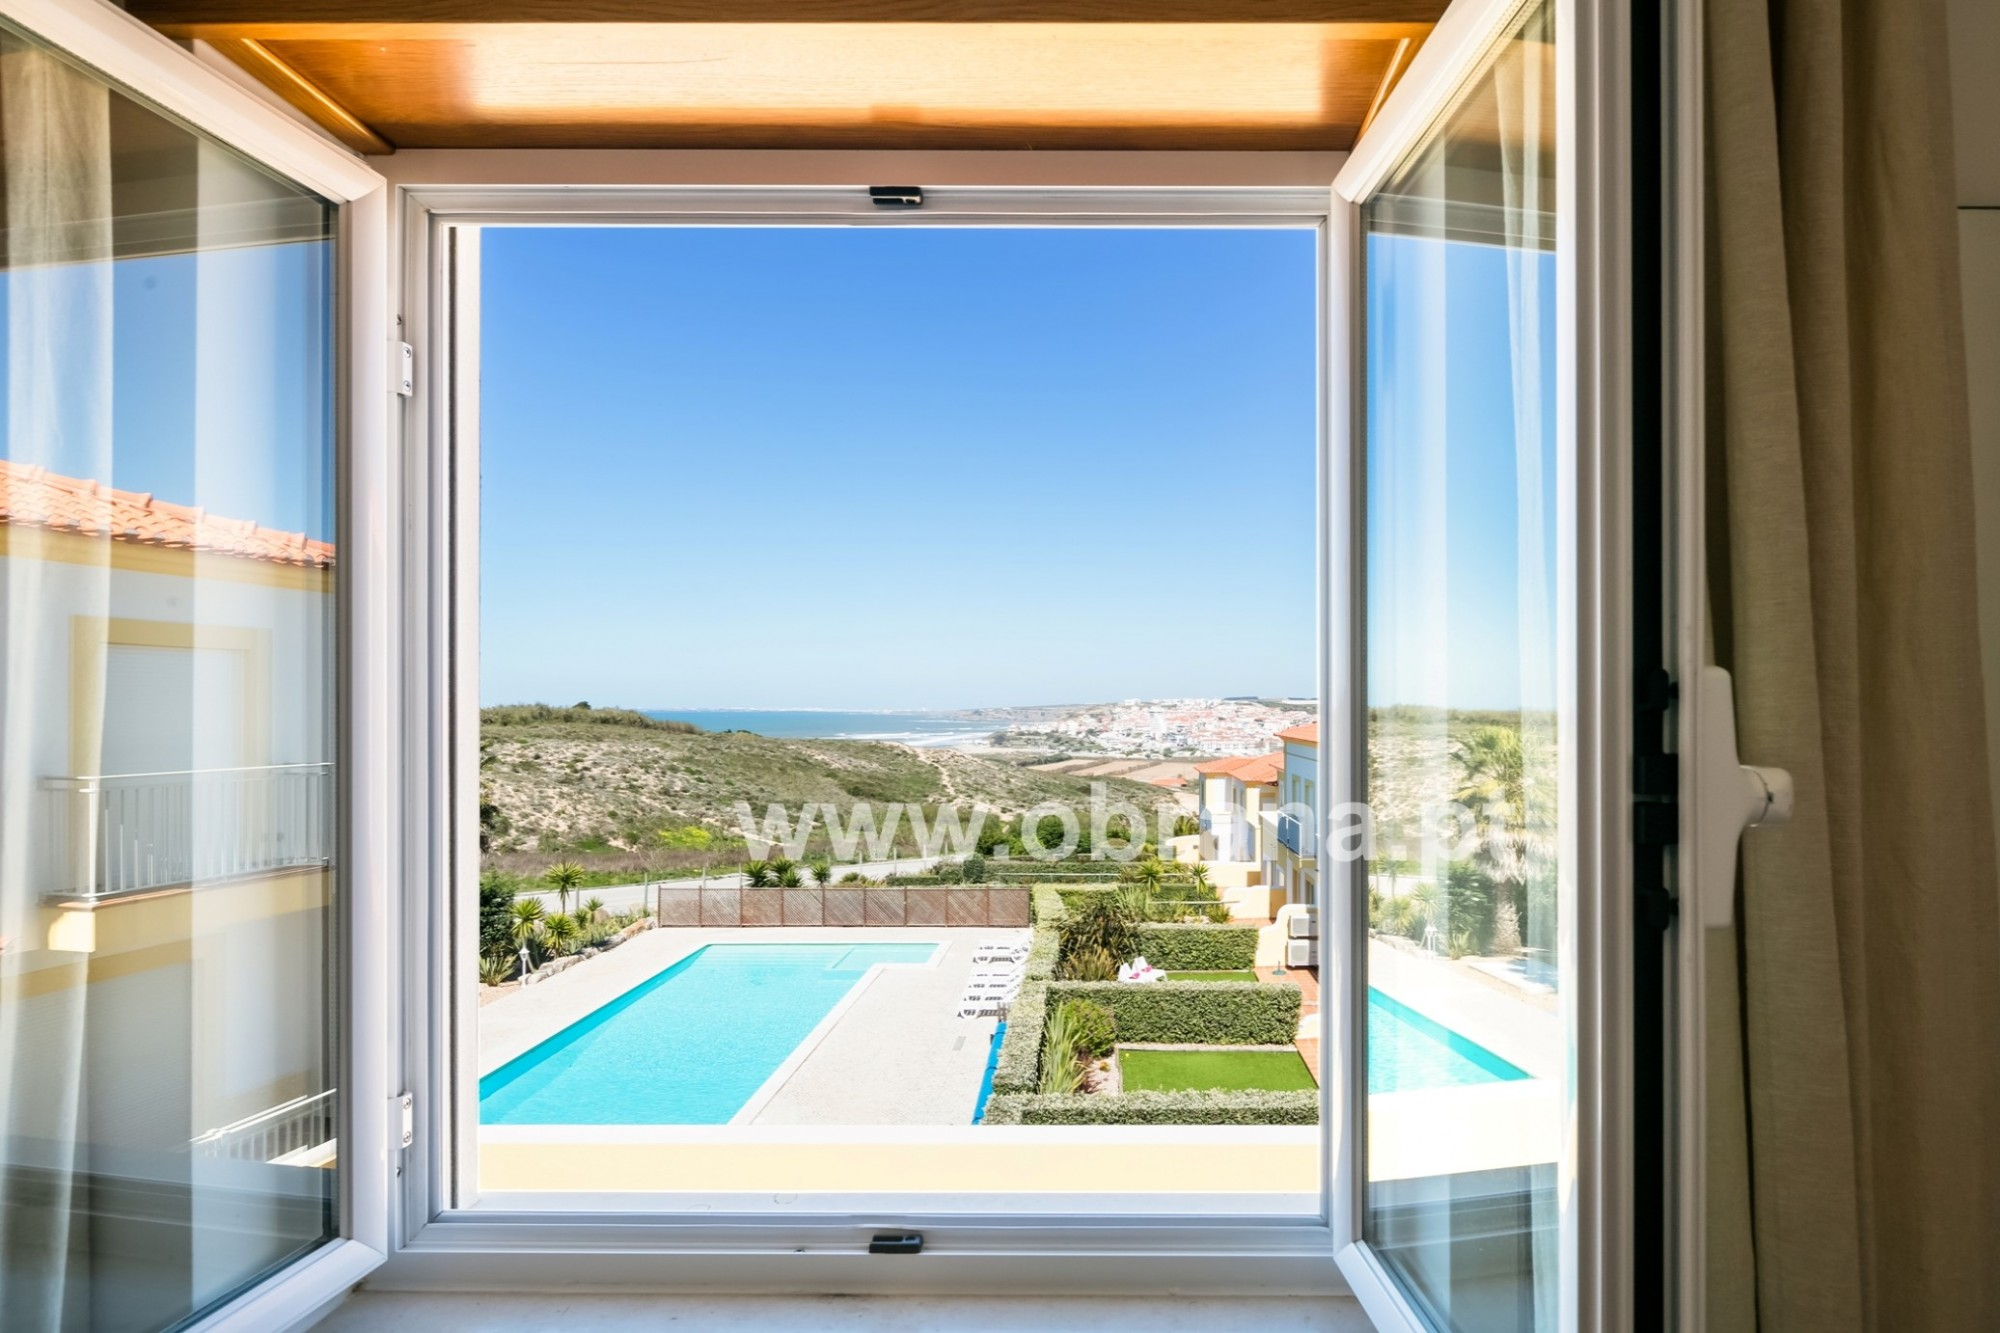 PORTUGAL HOLIDAY RENTAL VILLA C| POOL | AIR CONDITIONING | WIFI | 3 BEDROOMS, SLEEPS 6 | BEACH | LARGE GROUPS